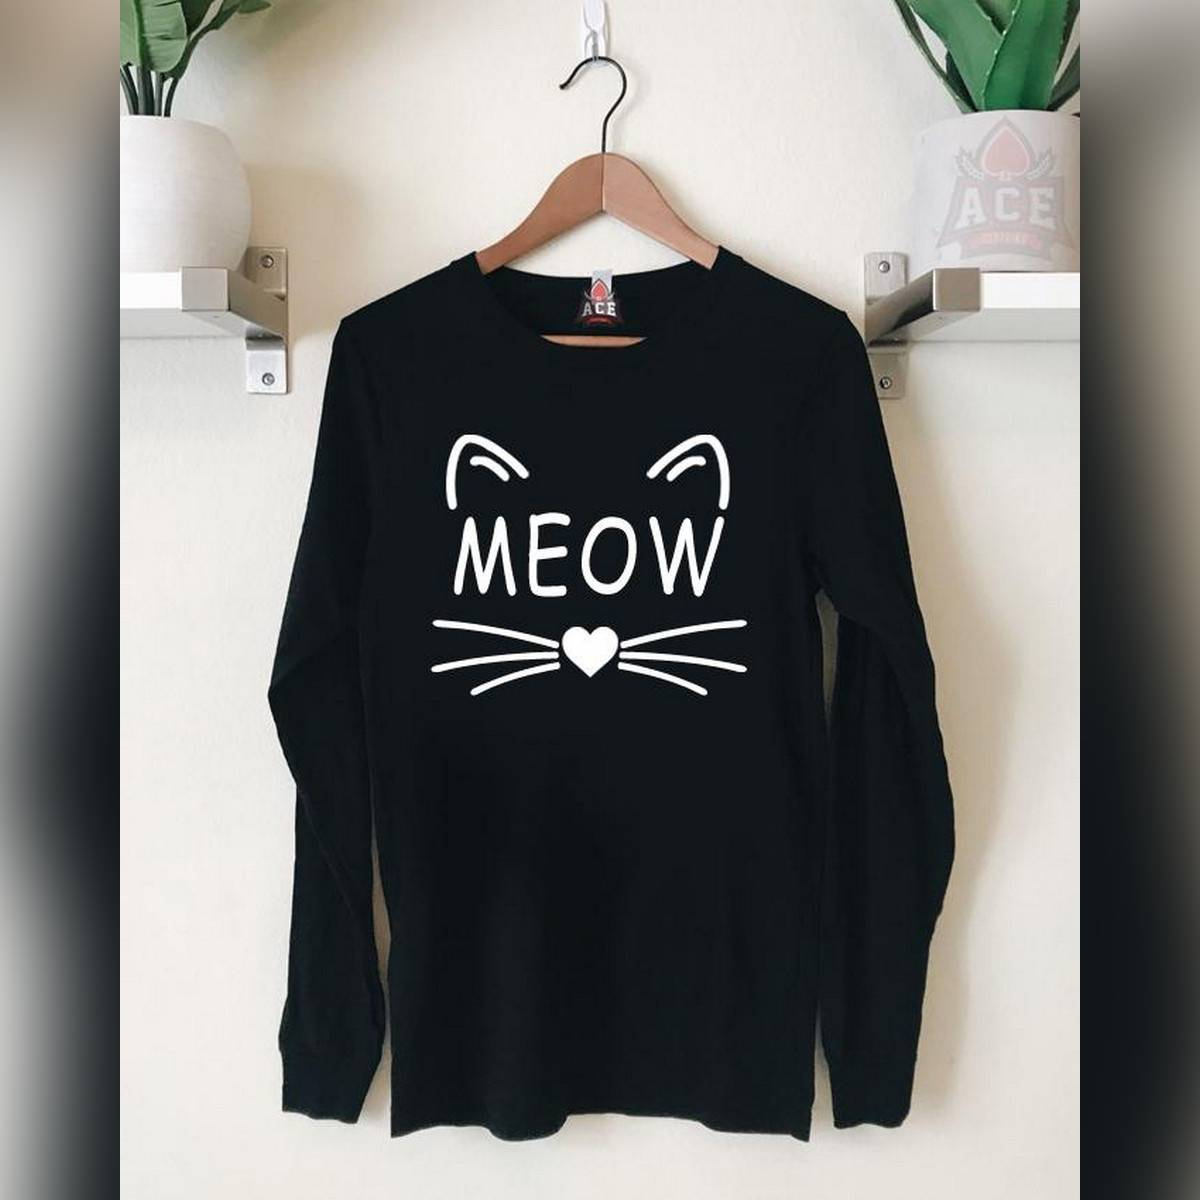 Ace - Black MEOW Full Sleeves Cotton Printed T Shirt for Women